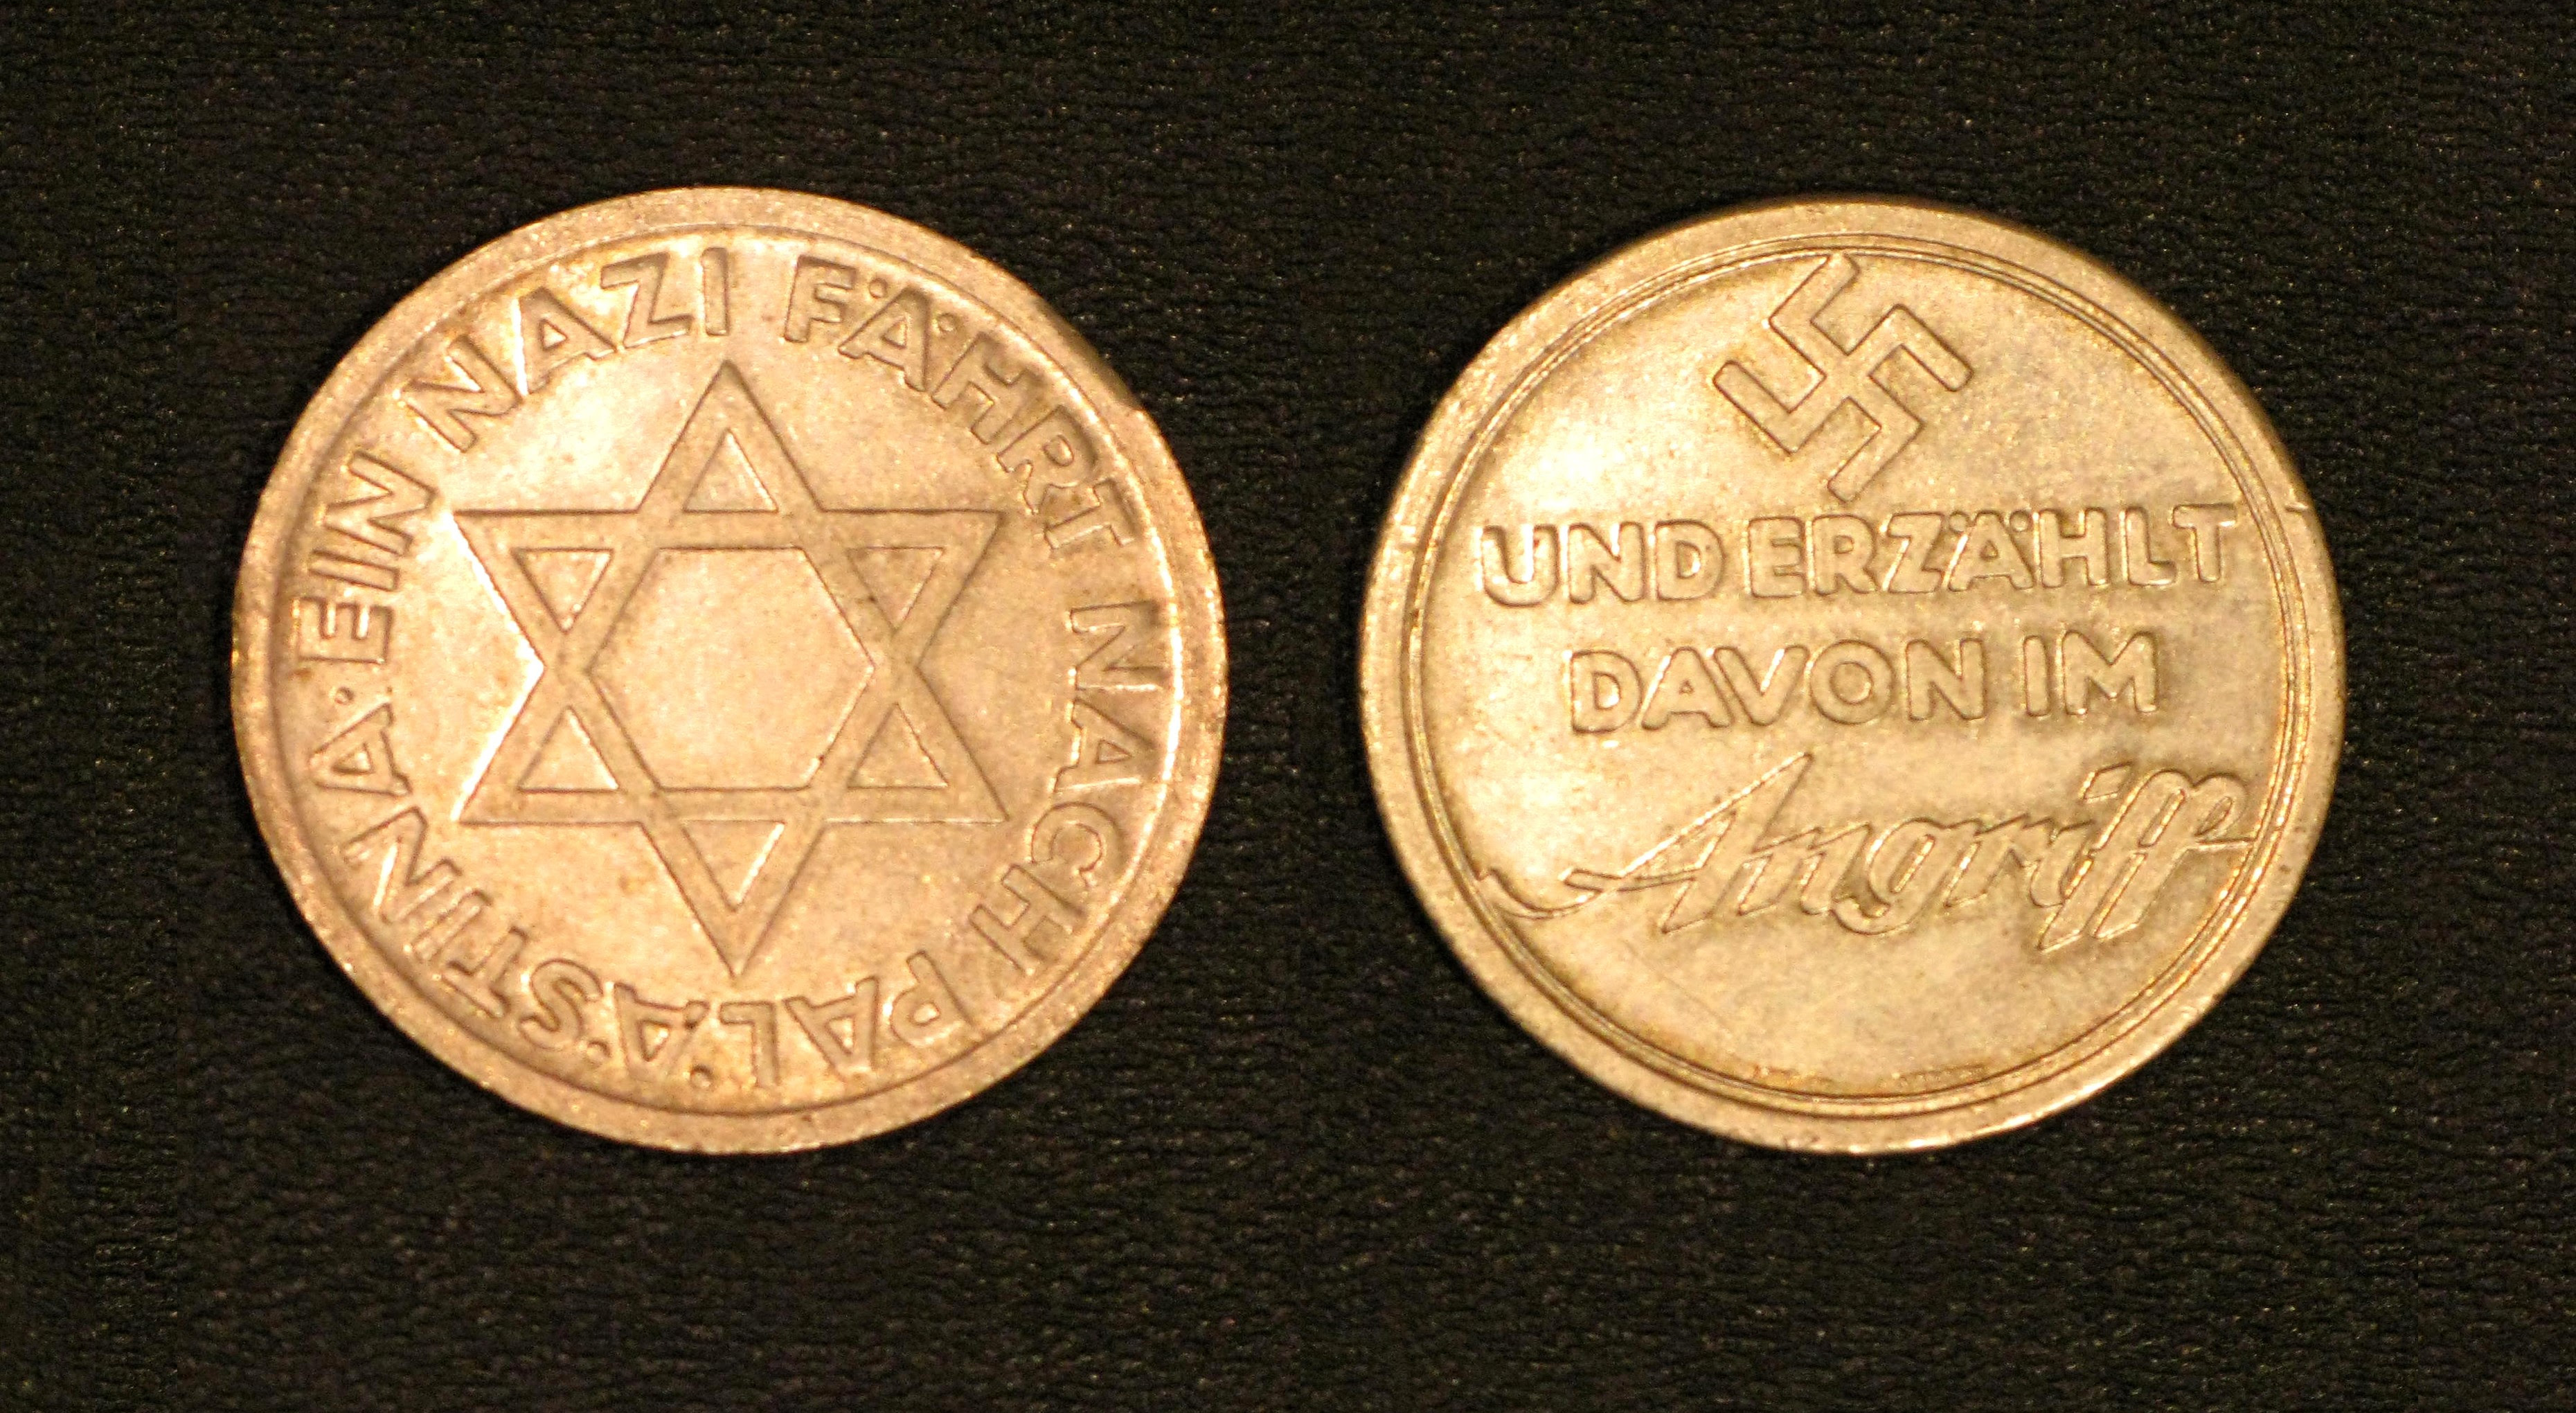 Little Known Medal Marks Nazi Zionist Co Operation In 1933